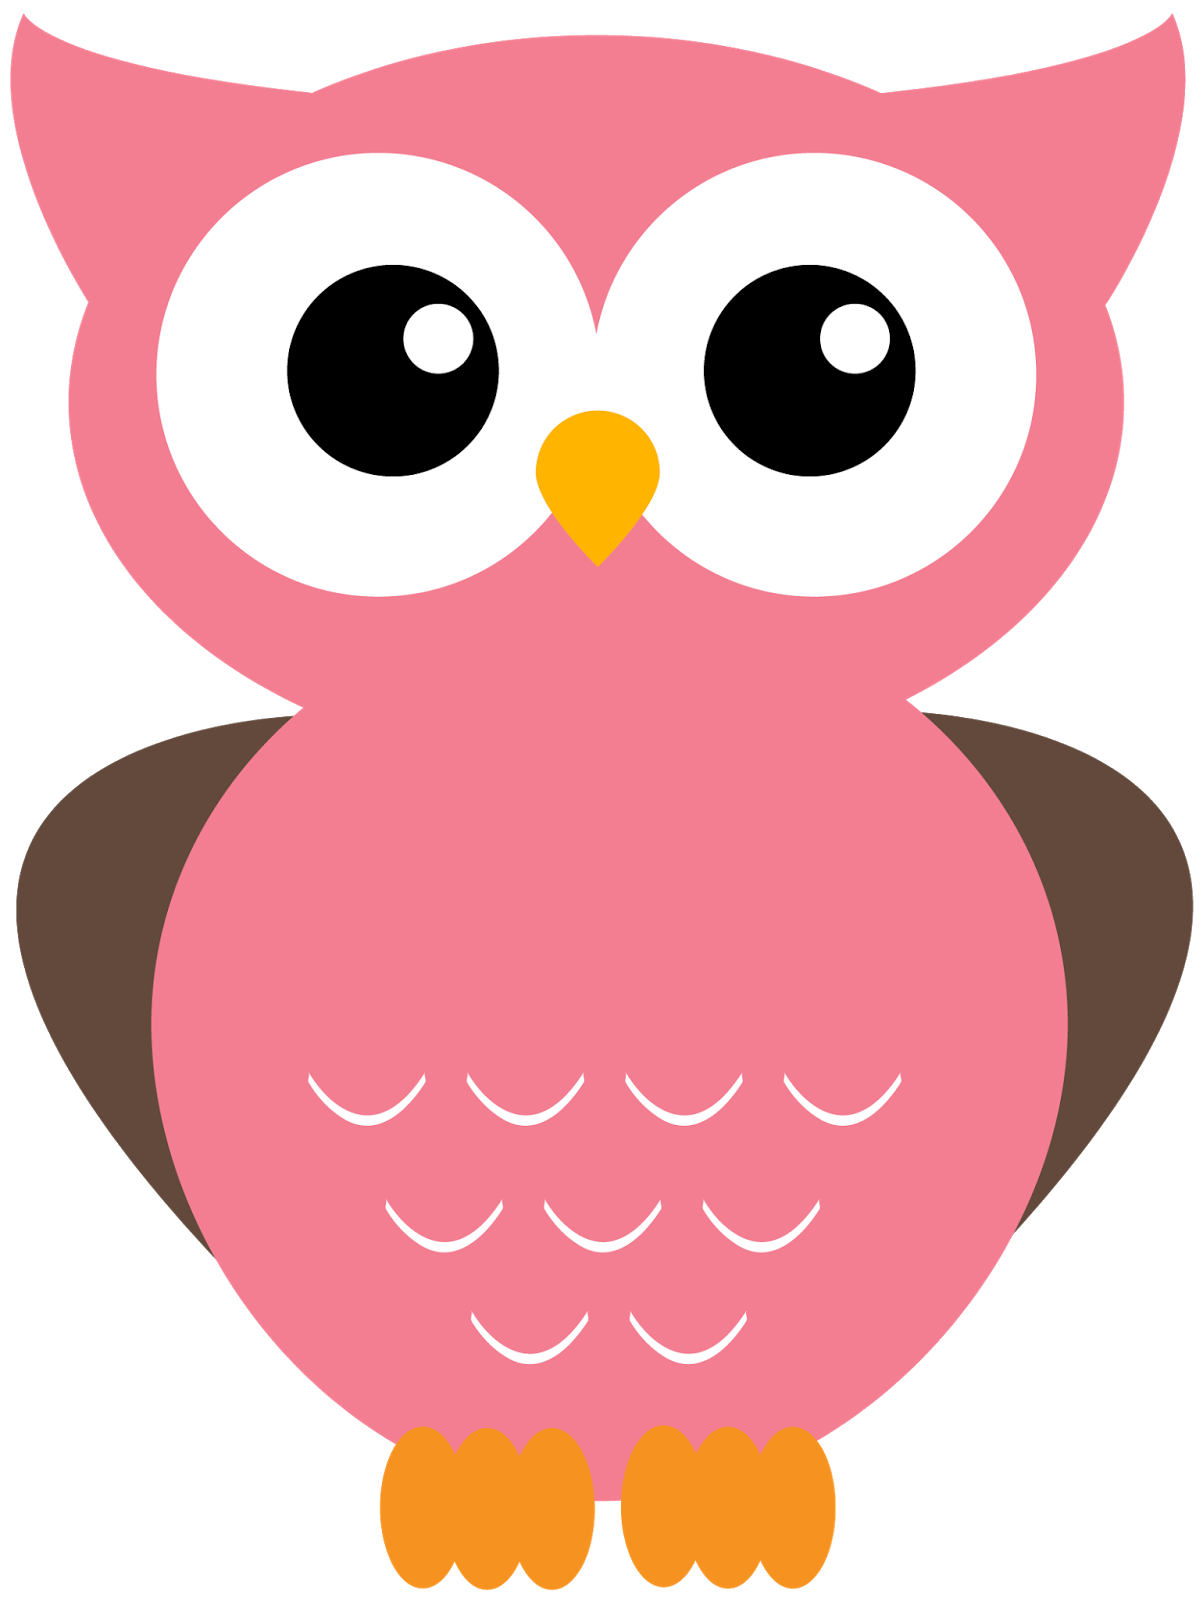 Giggle And Print 12 More Adorable Owl Printables I M Freakin In Love With Owls How Cute Eulen Applikation